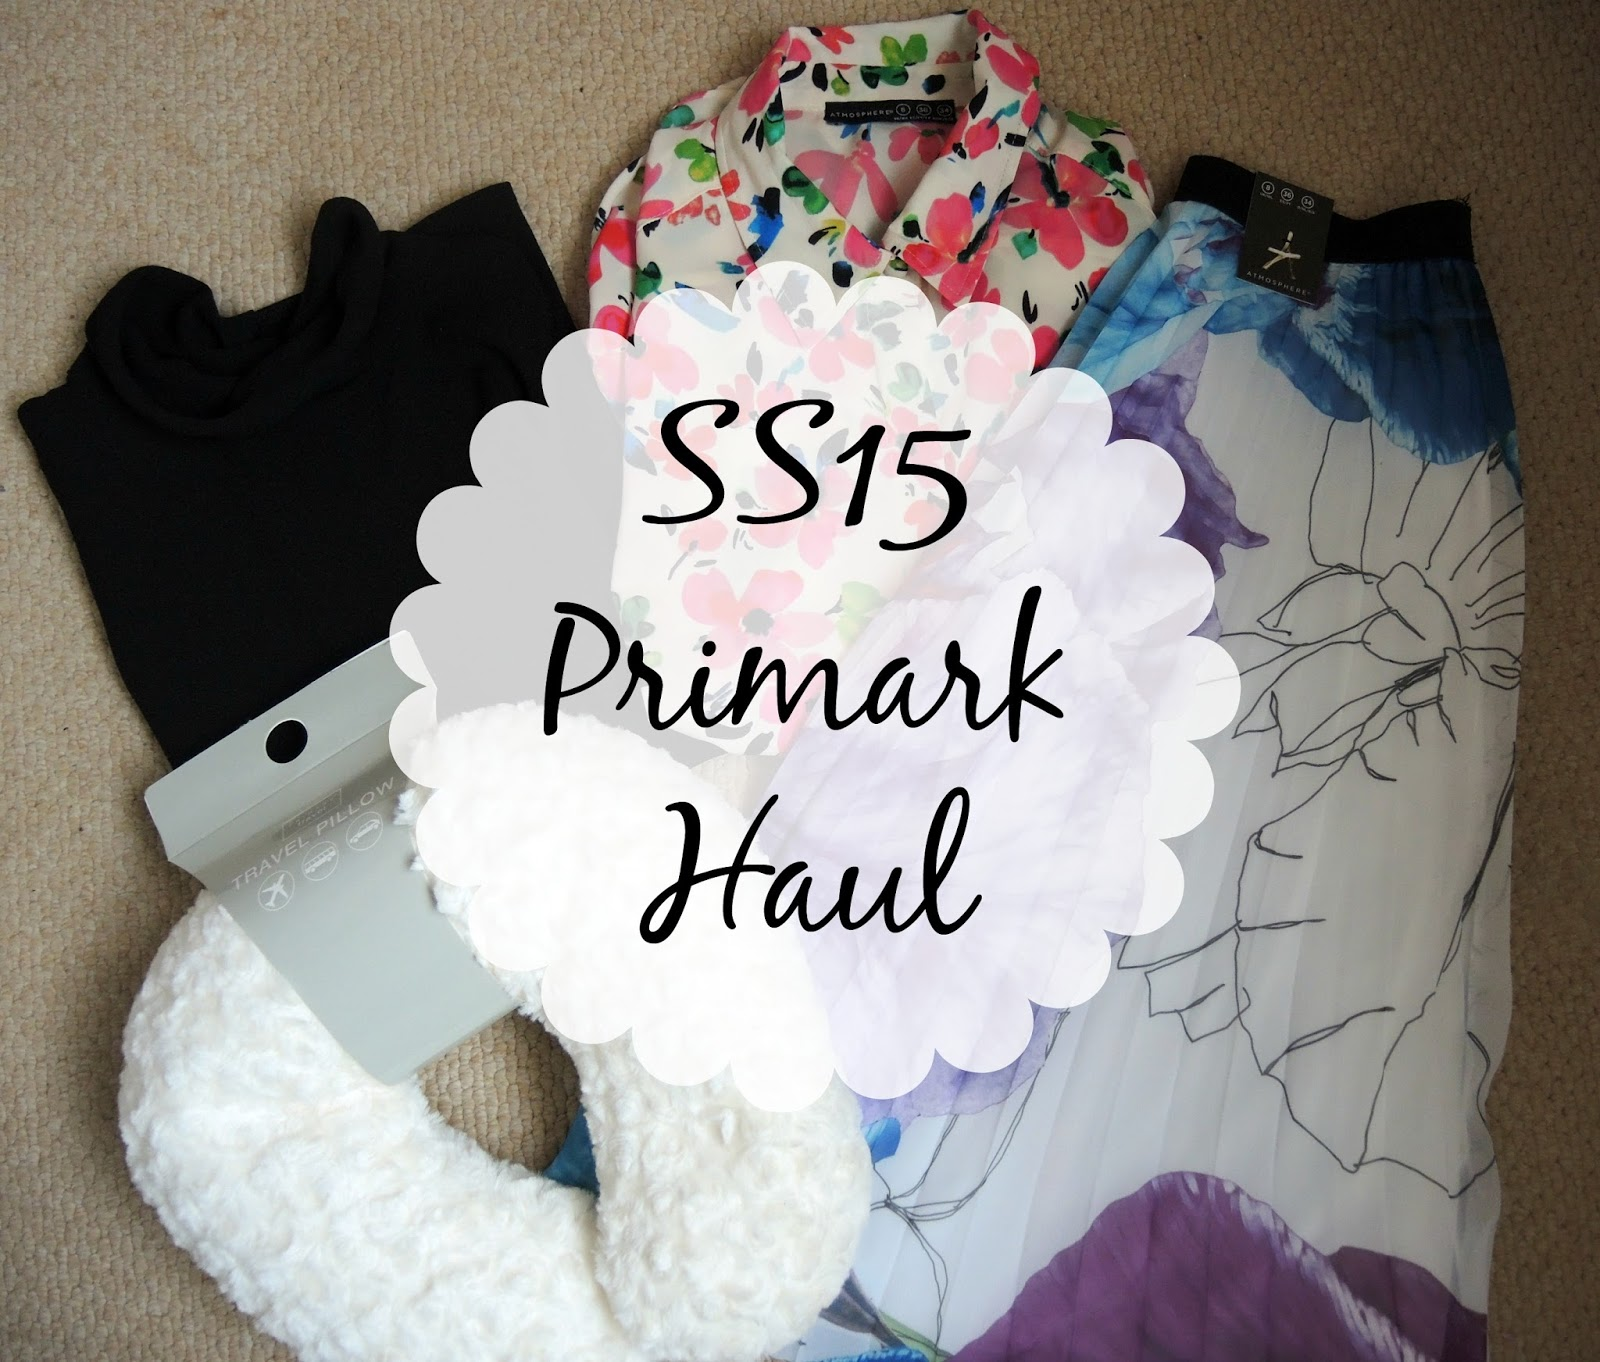 Primark Haul March 2015 | Vanity Fairest